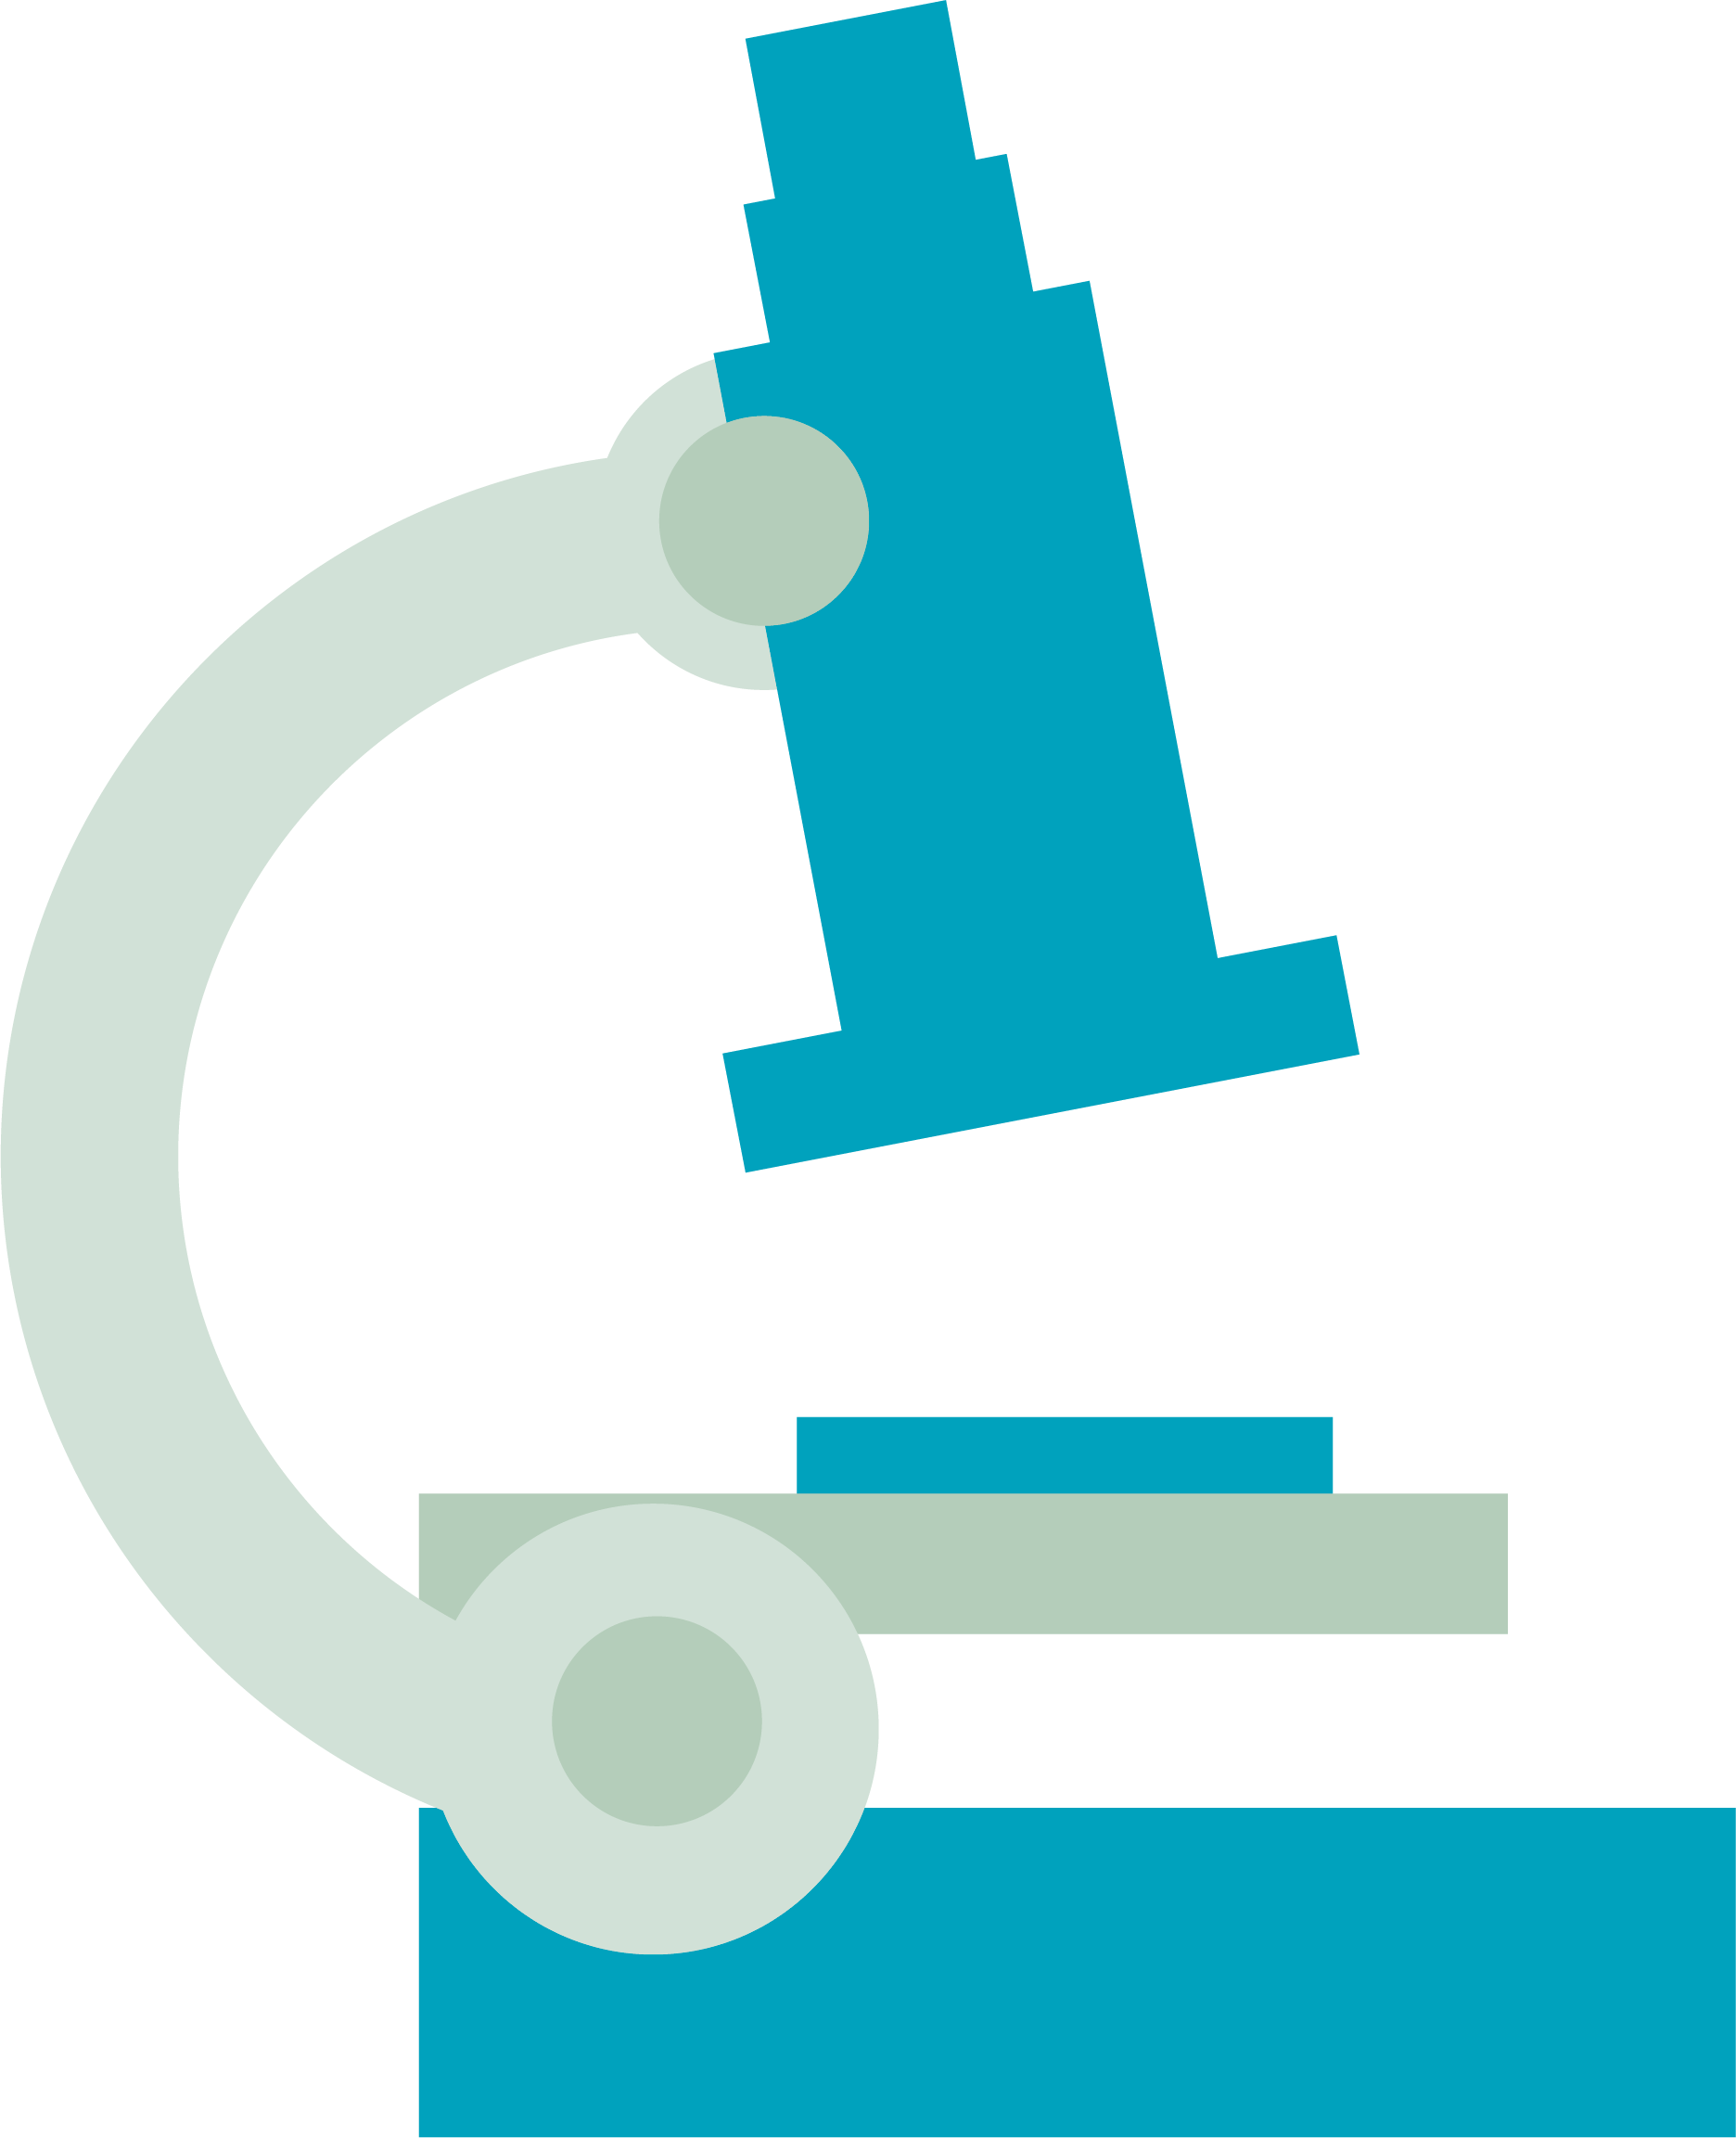 Cartoon transprent png free. Microscope clipart biomed